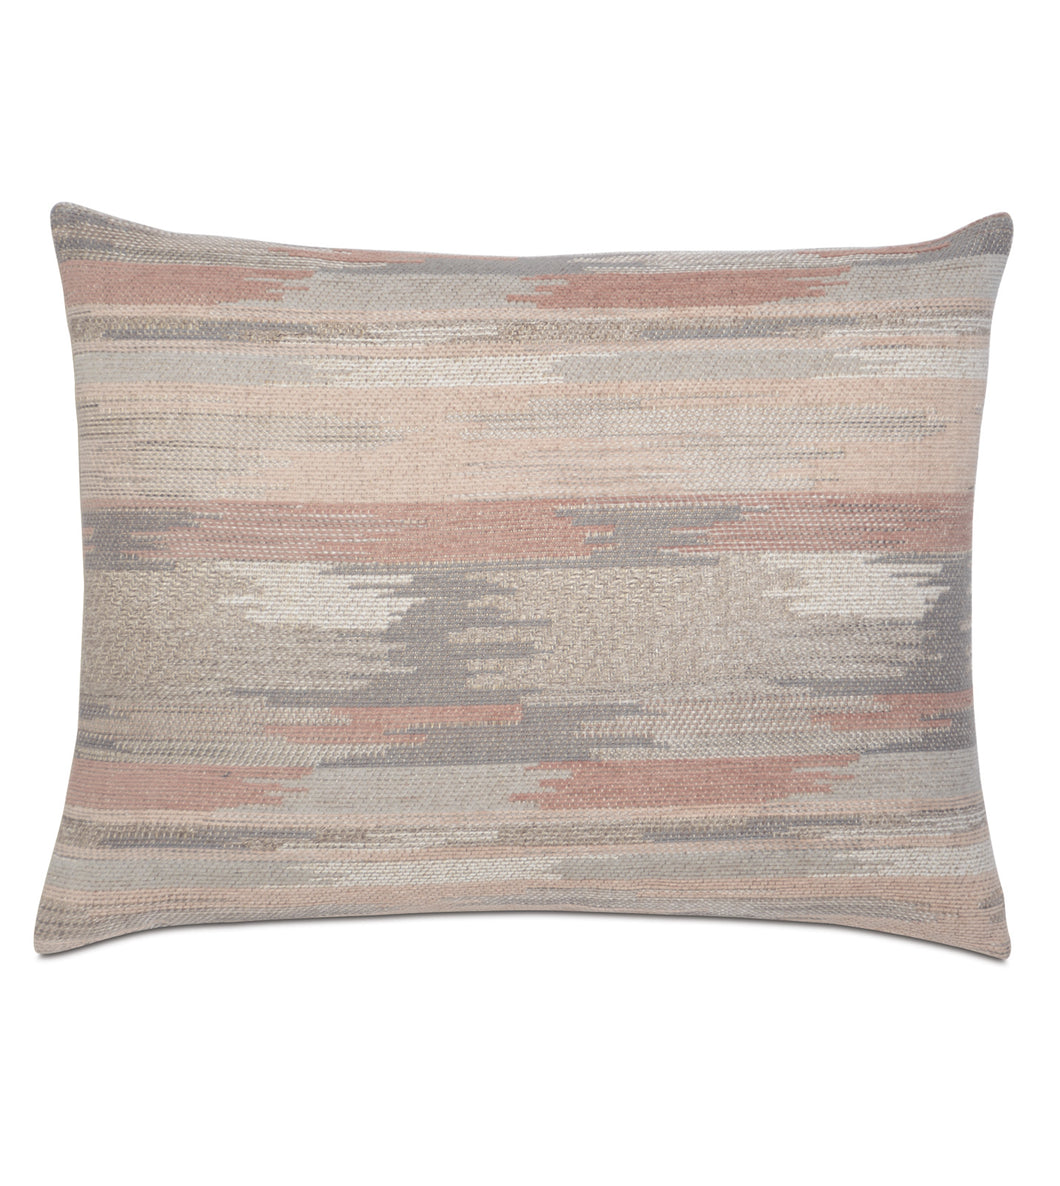 Salmon Lodge Abstract Tribal Jacquard Standard Sham Knife Edge 20